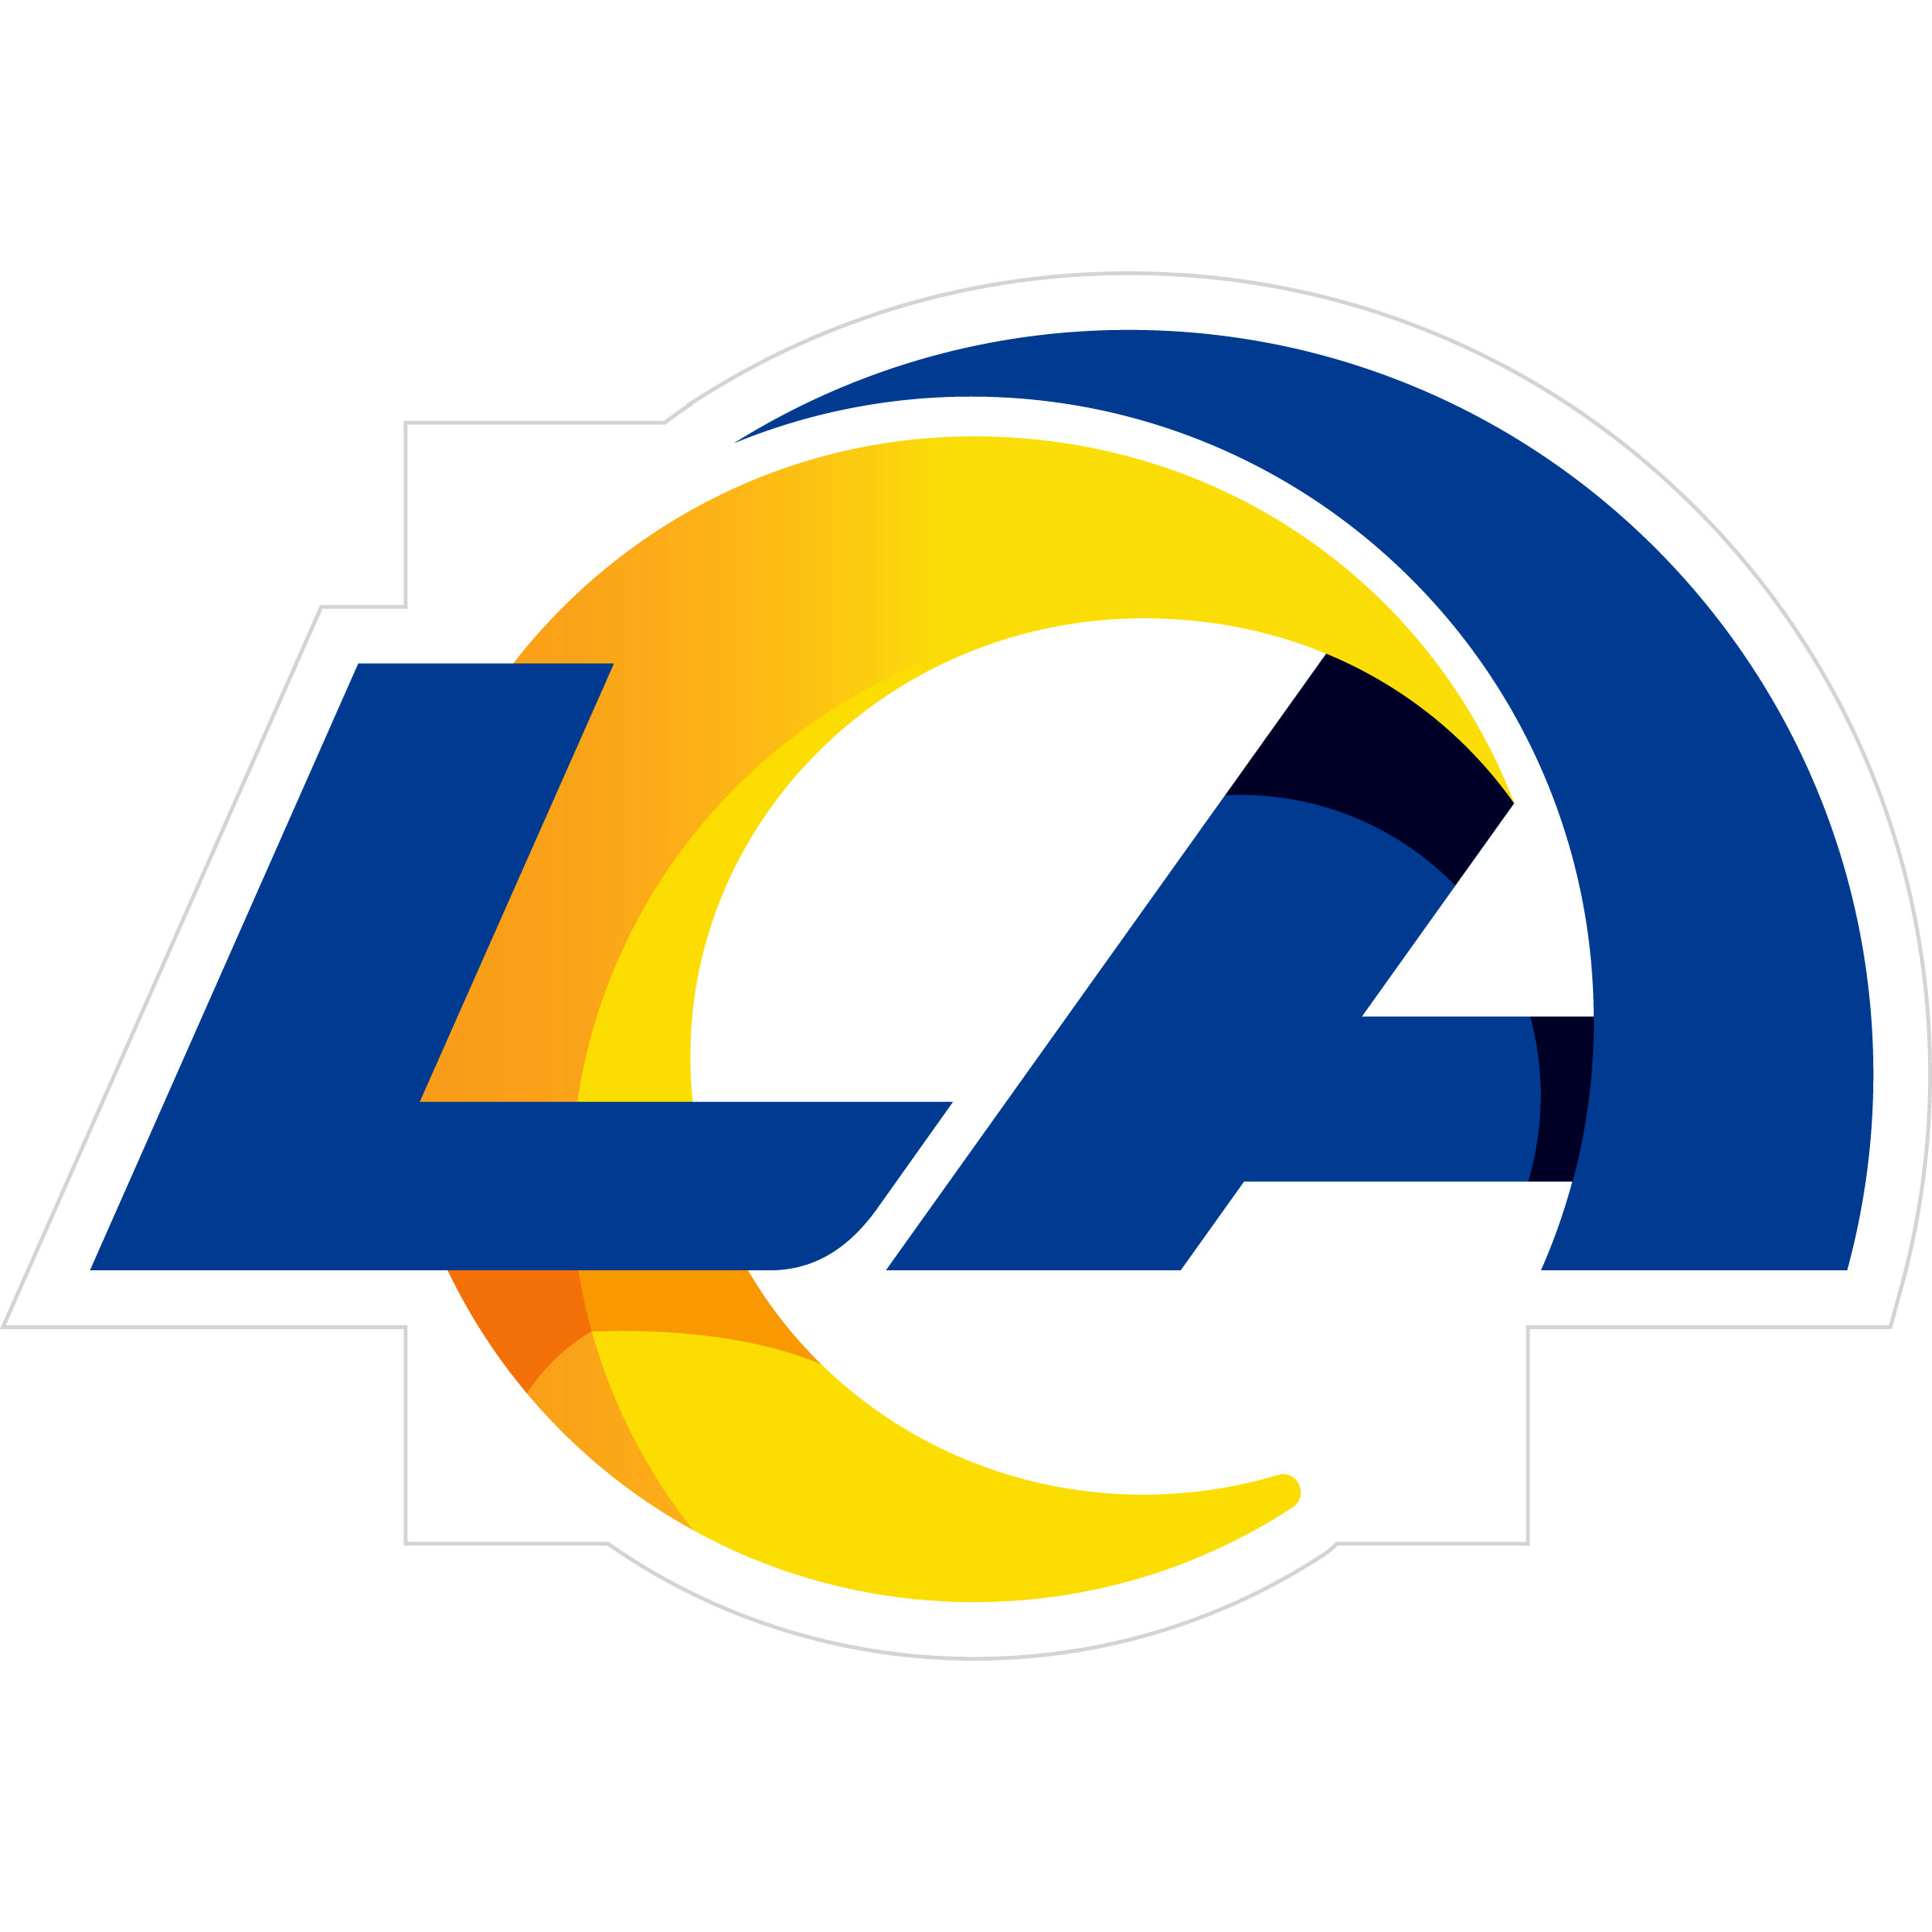 Los Angeles Rams 8 inch Auto Decal - This bold, 8 inch Los Angeles Rams is a great way to show off your team pride! The low tack vinyl decal is easily positioned and adjusted to make sure you get that logo in just the right spot on your vehicle. Designed to be used on the outside of the window.